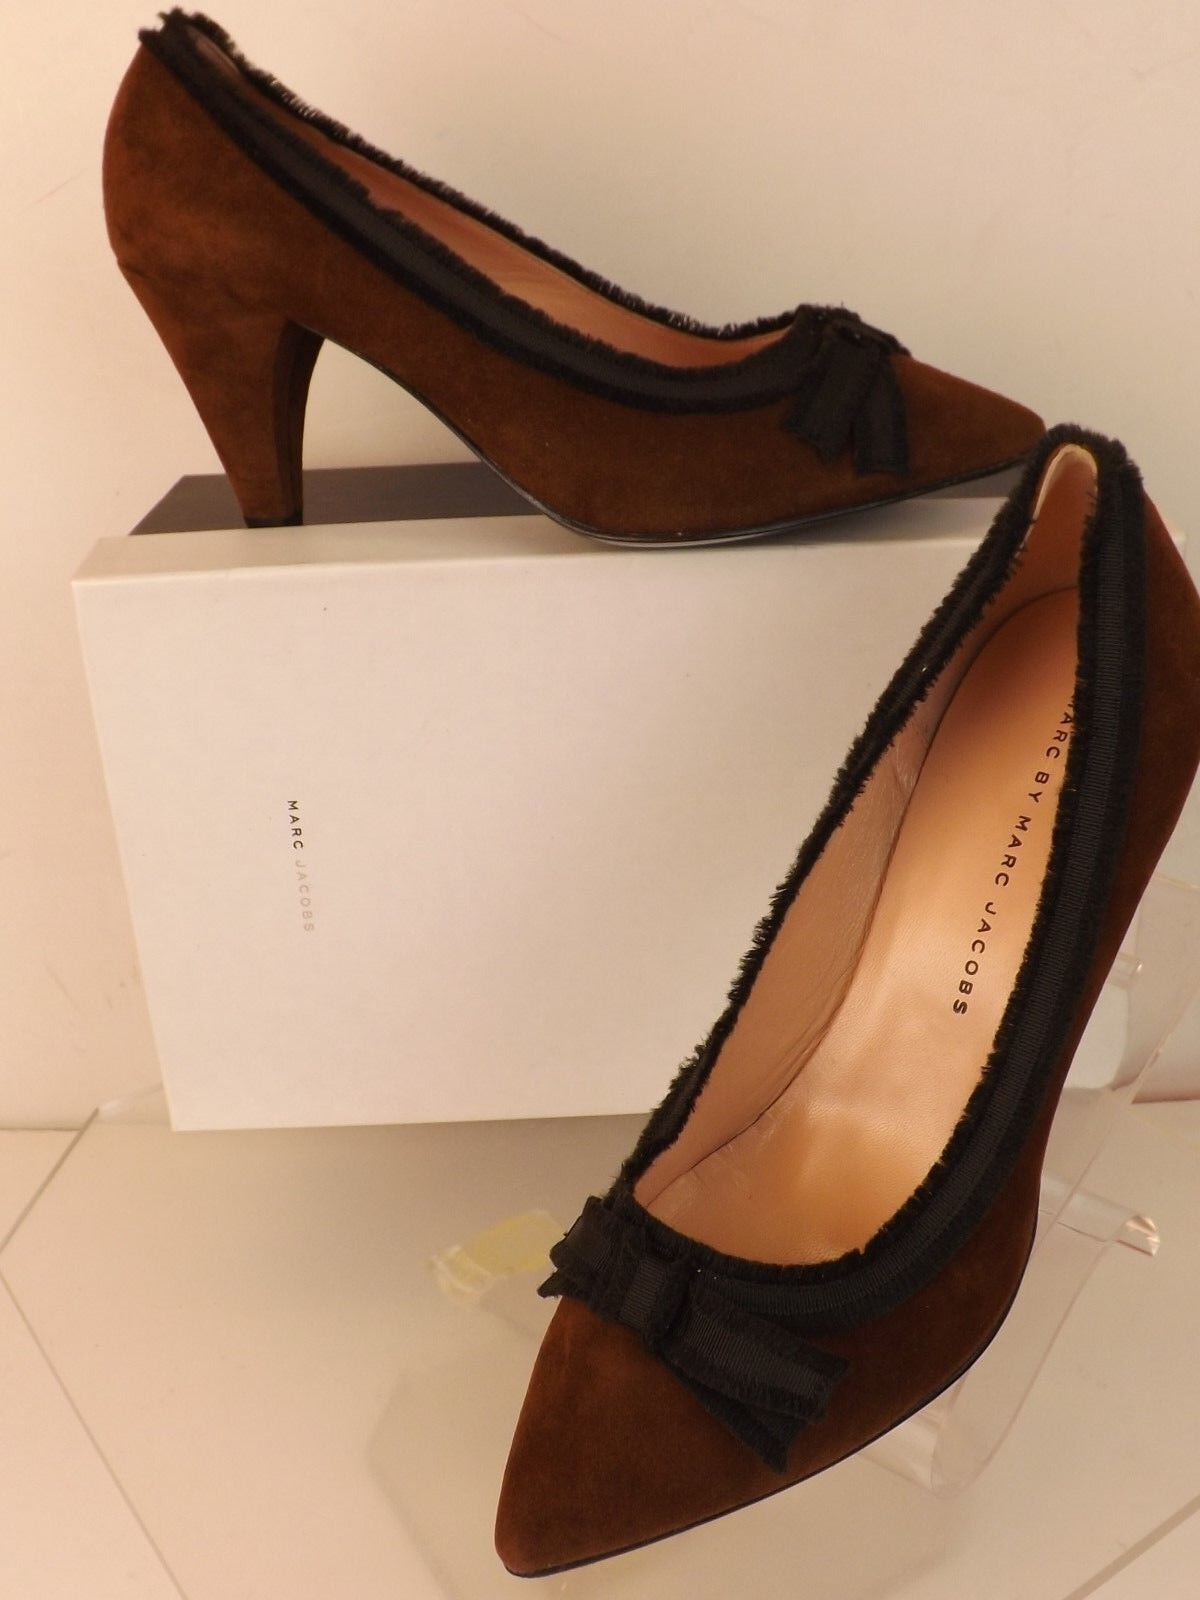 NIB MARC BY MARC JACOBS marron SUEDE GROSGRAIN BOW POINTY TOE PUMPS 37.5